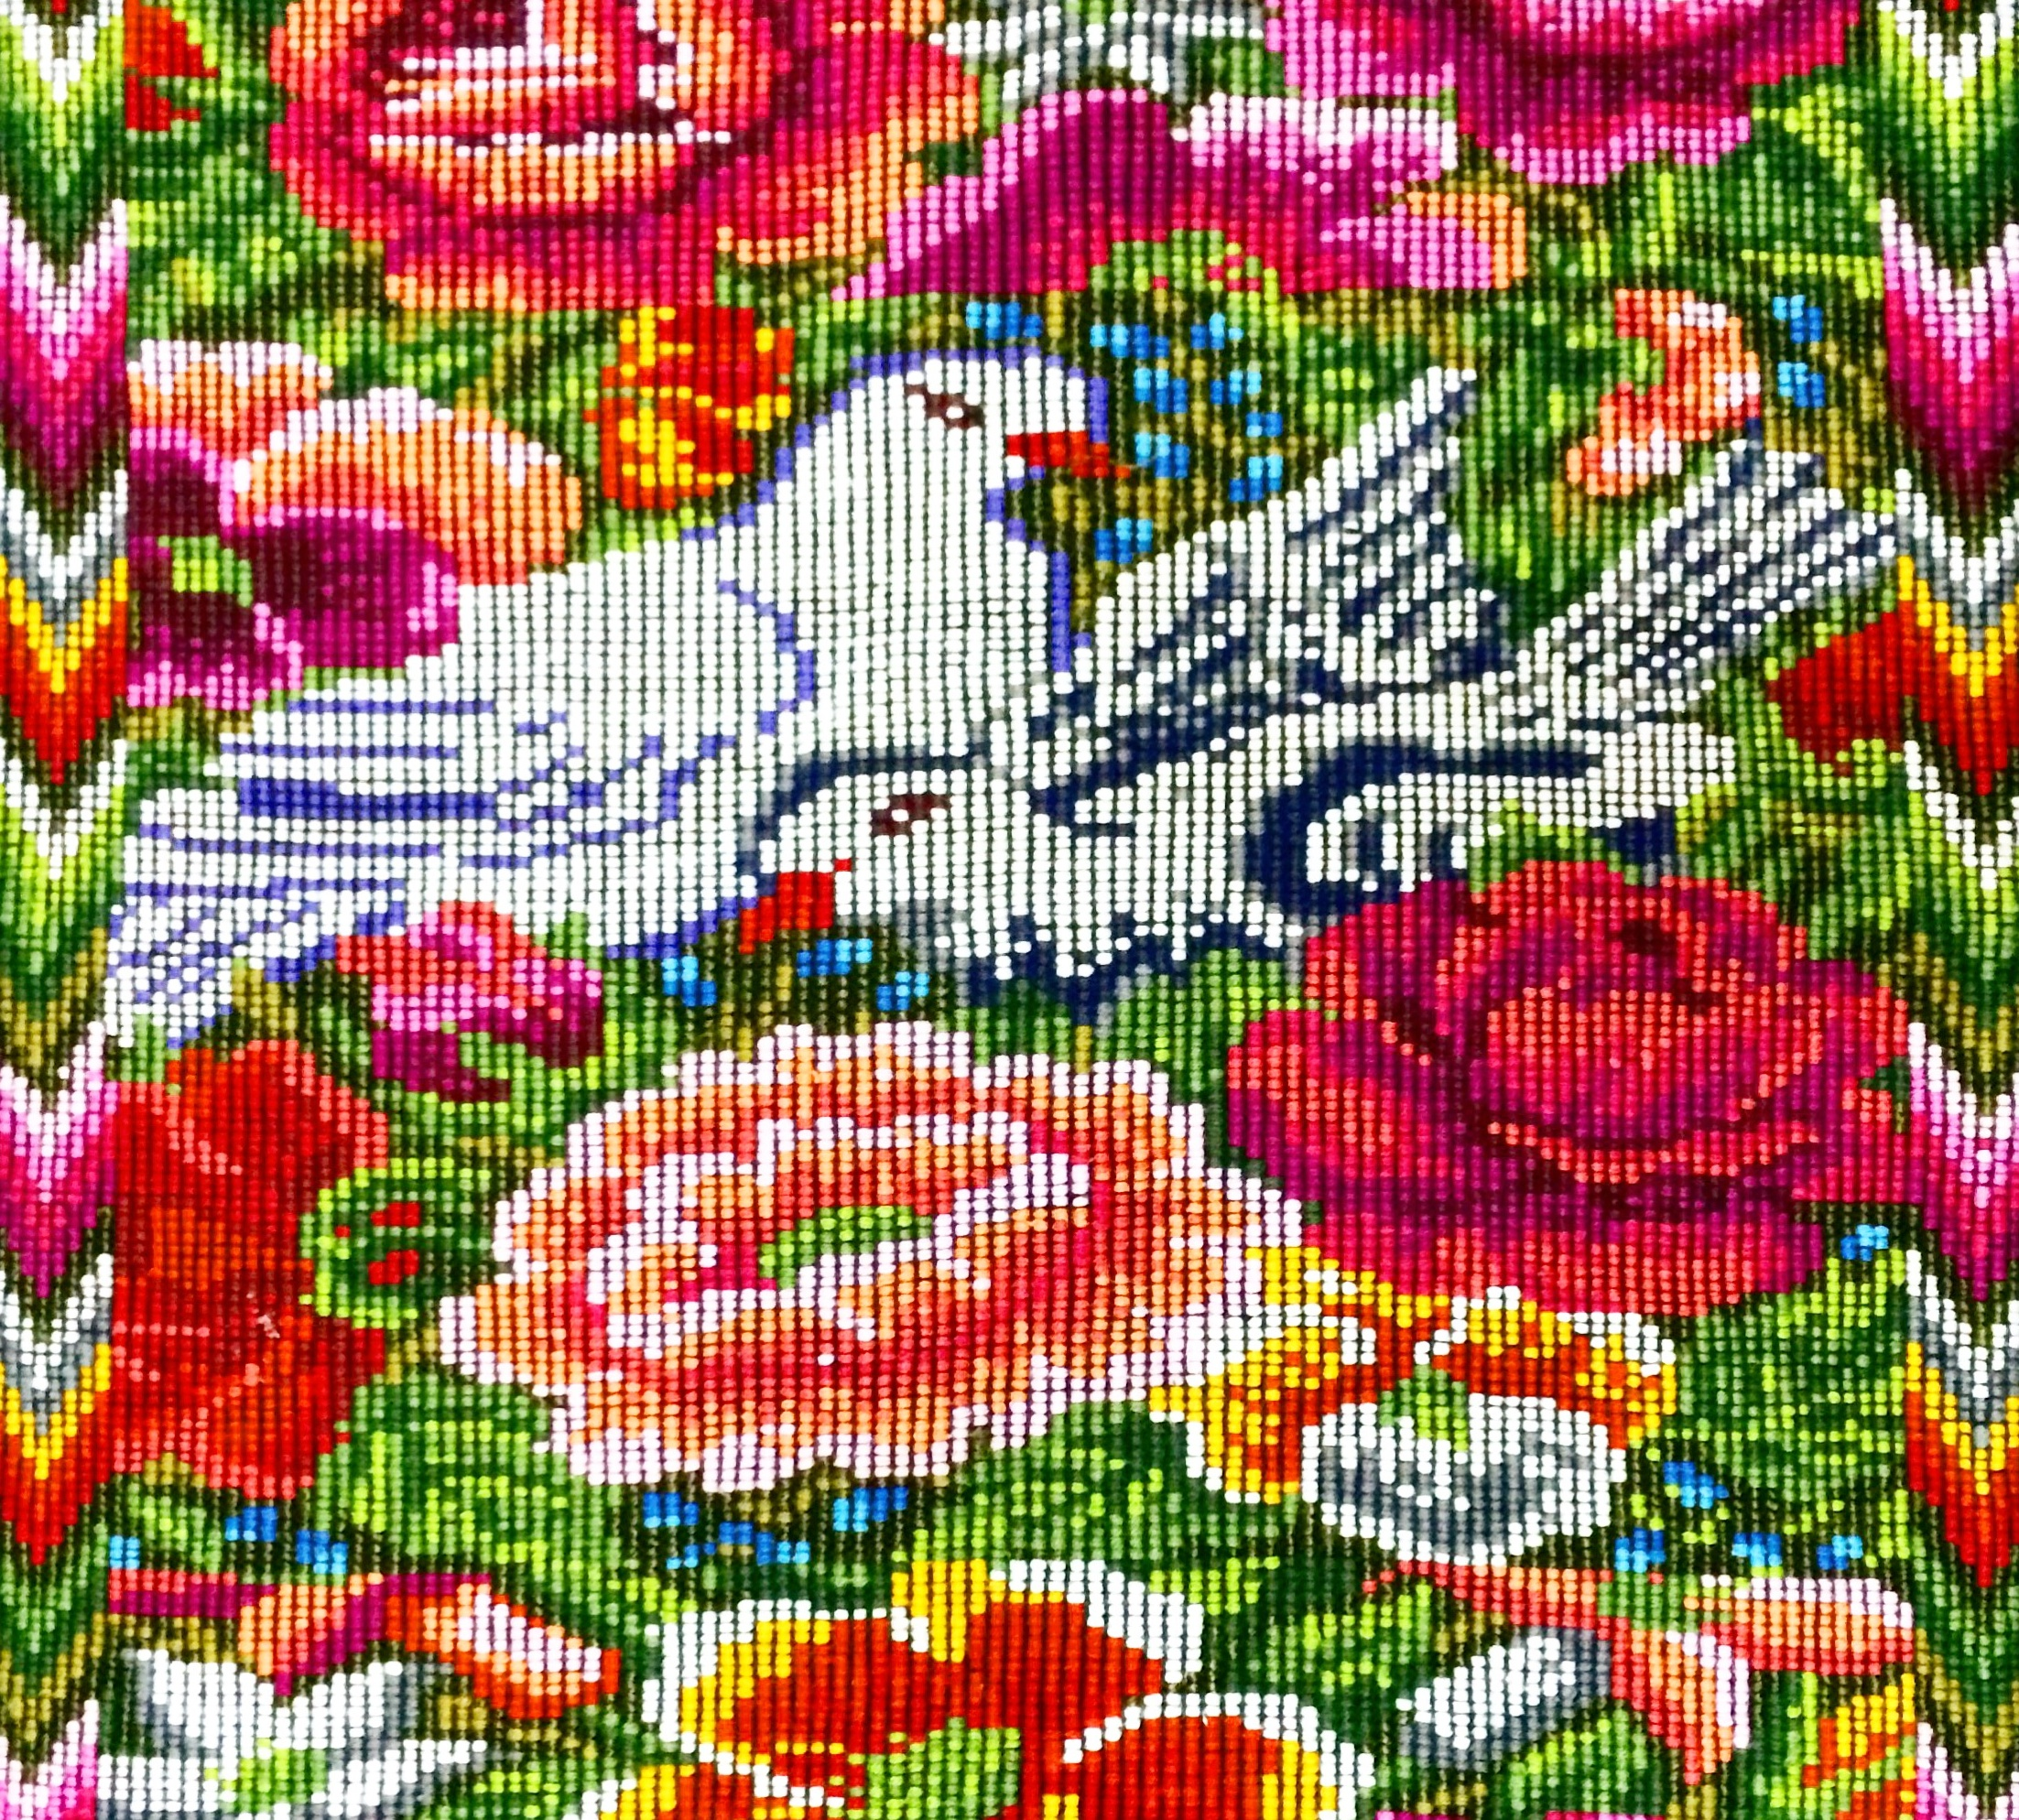 The huipil from Chichicastenango is characterized by colourful floral, birds and geometric patterns